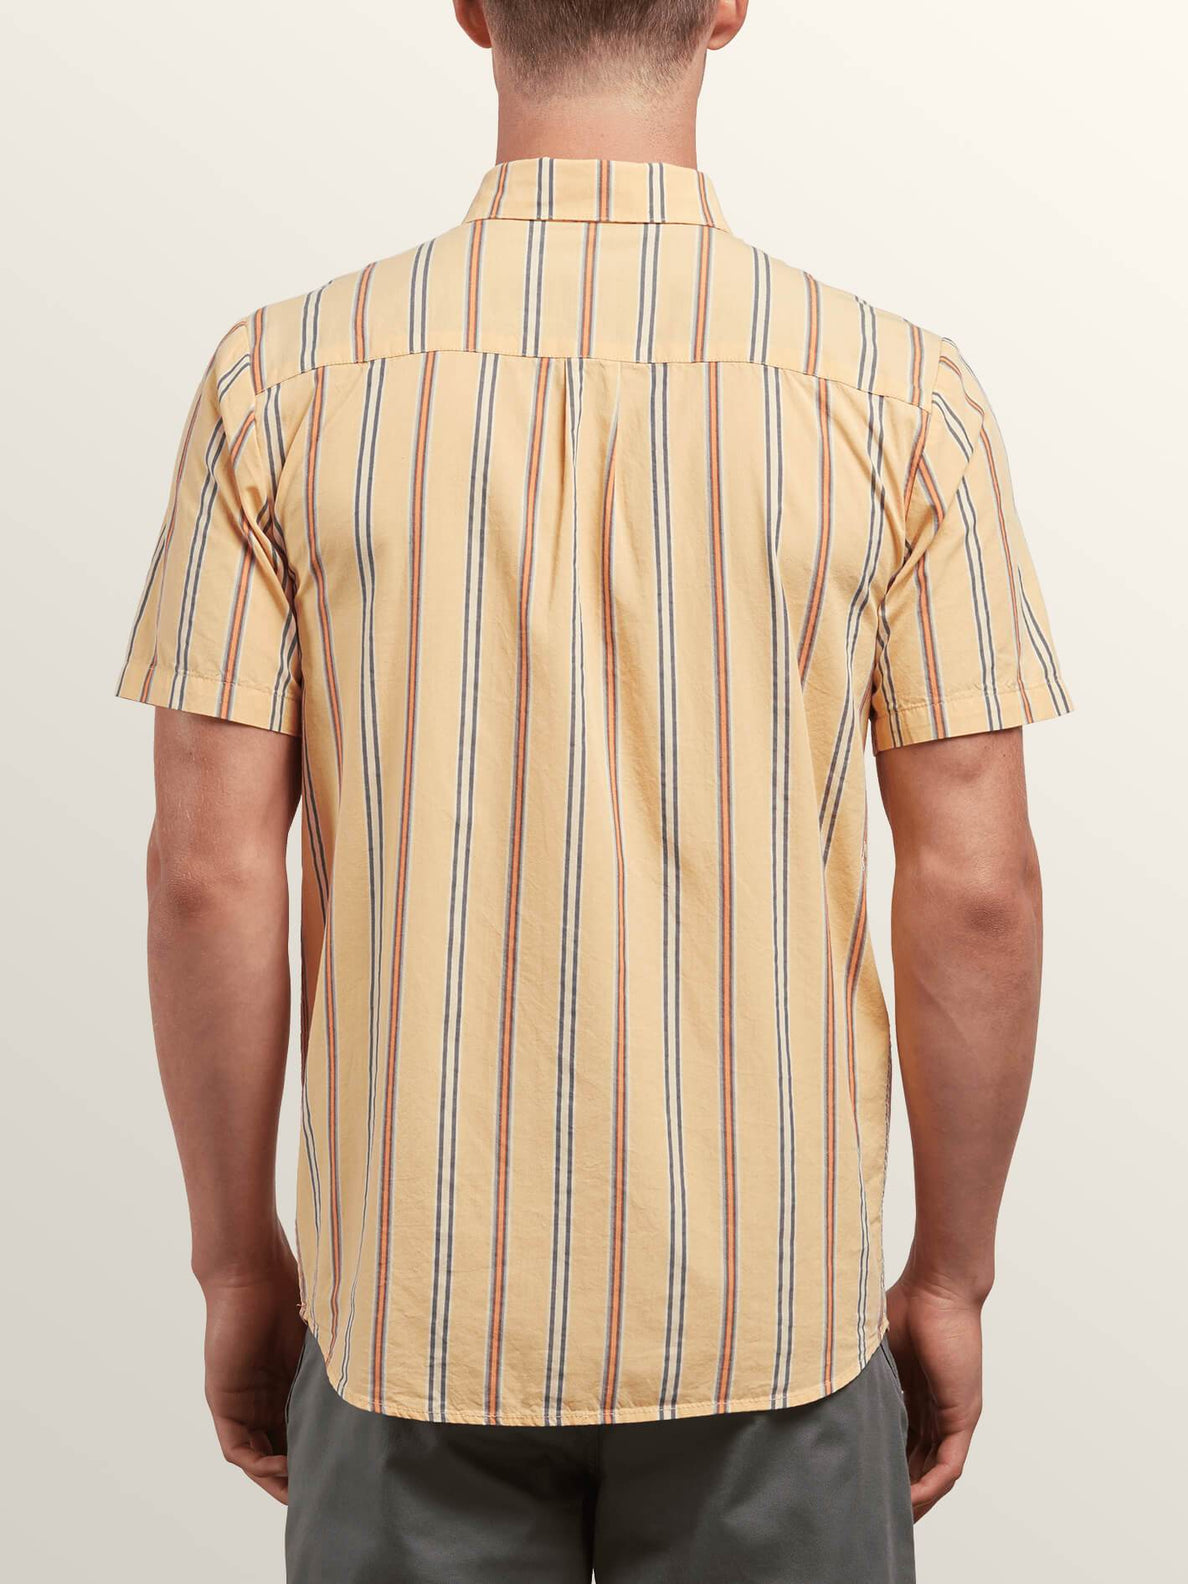 Mix Bag Short Sleeve Shirt In Sunburst, Back View